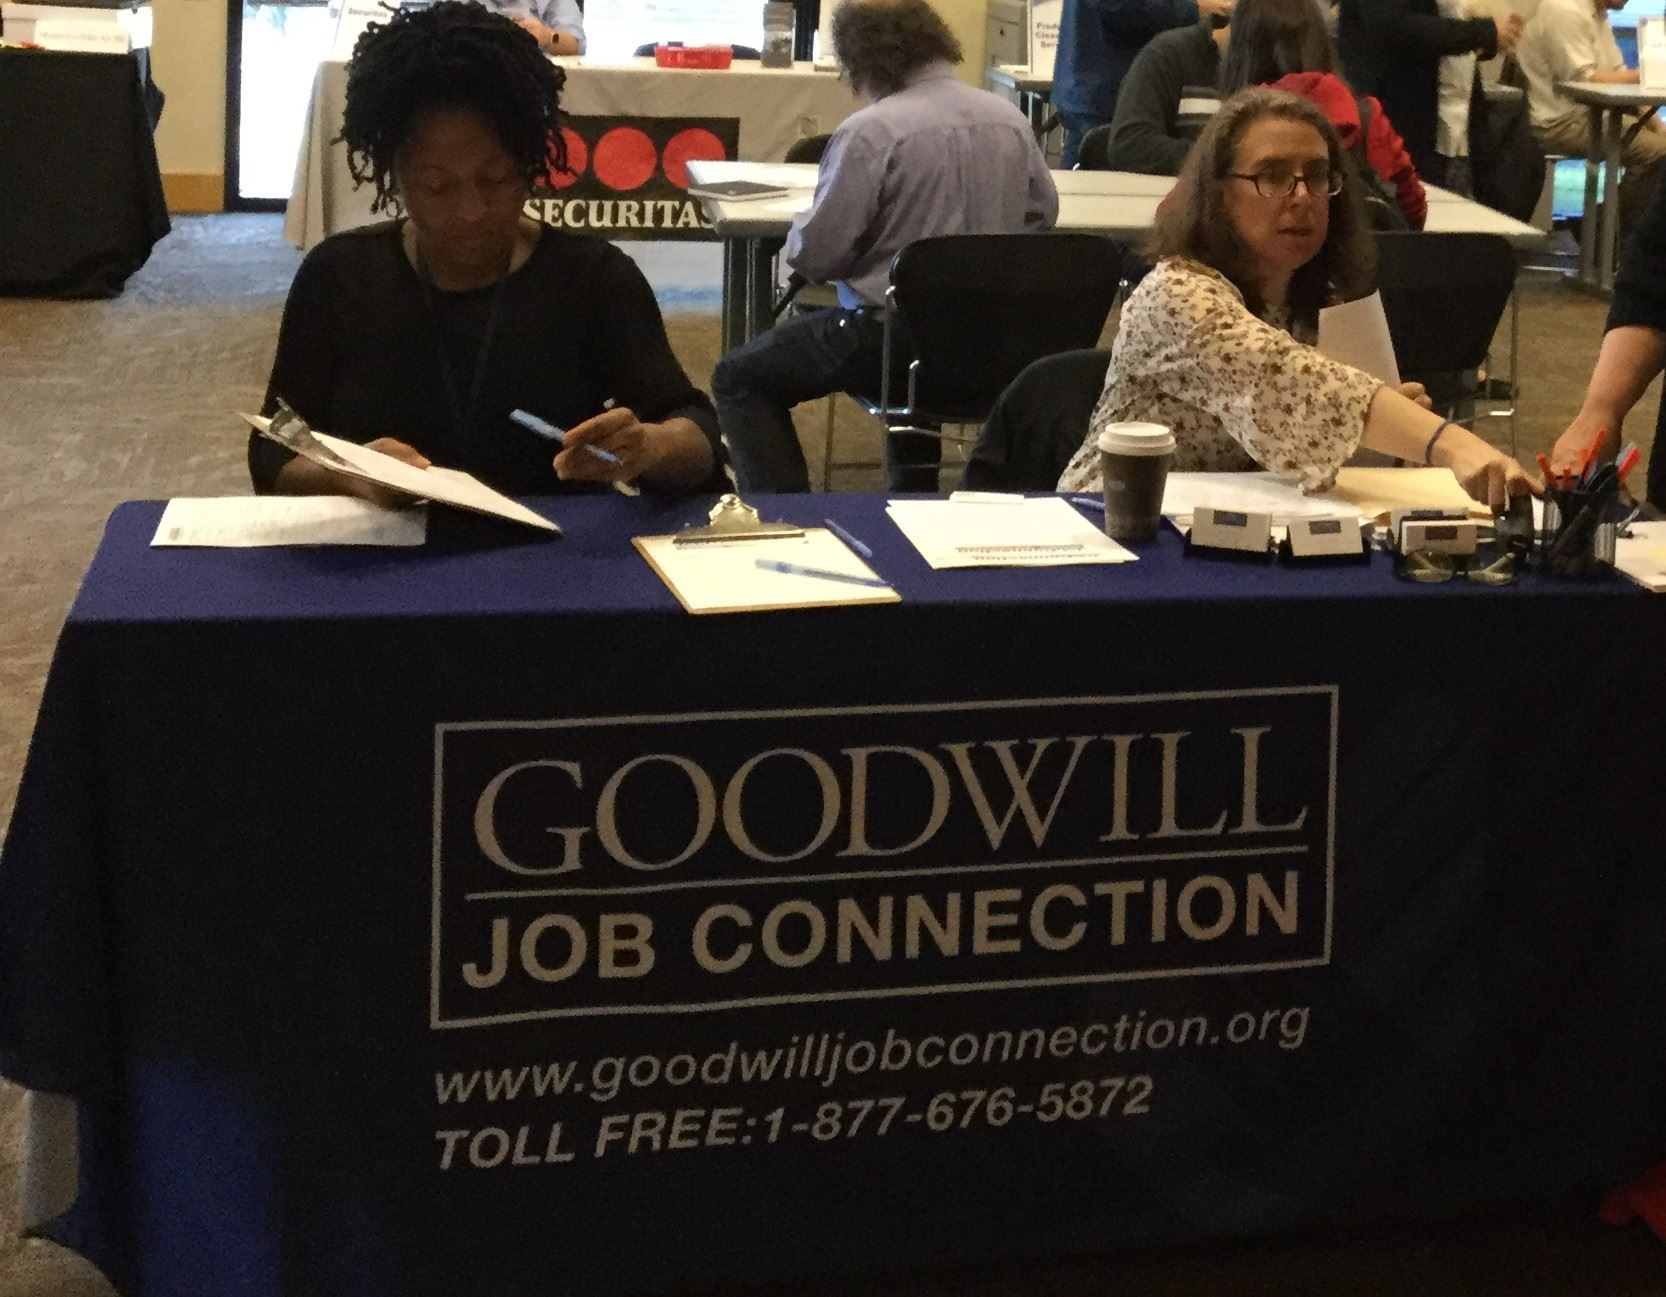 Two people sitting at a table with a banner that says Goodwill Job Connection Job Fair